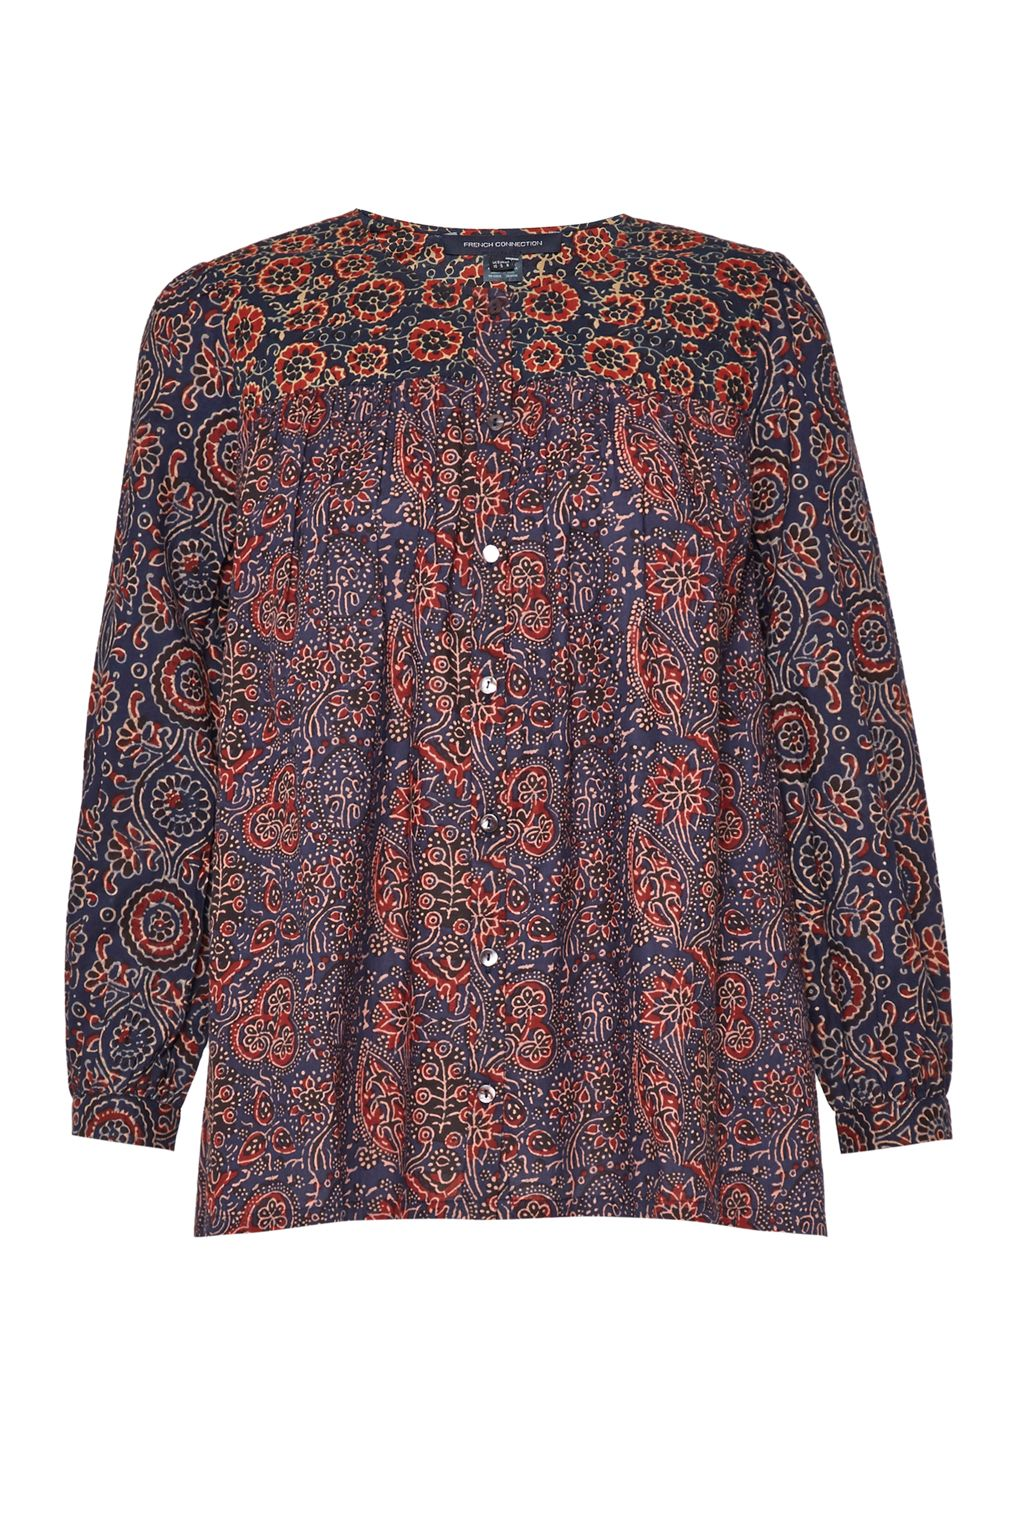 French Connection Marietta Mix Printed Cotton Smock Top, Multi-Coloured